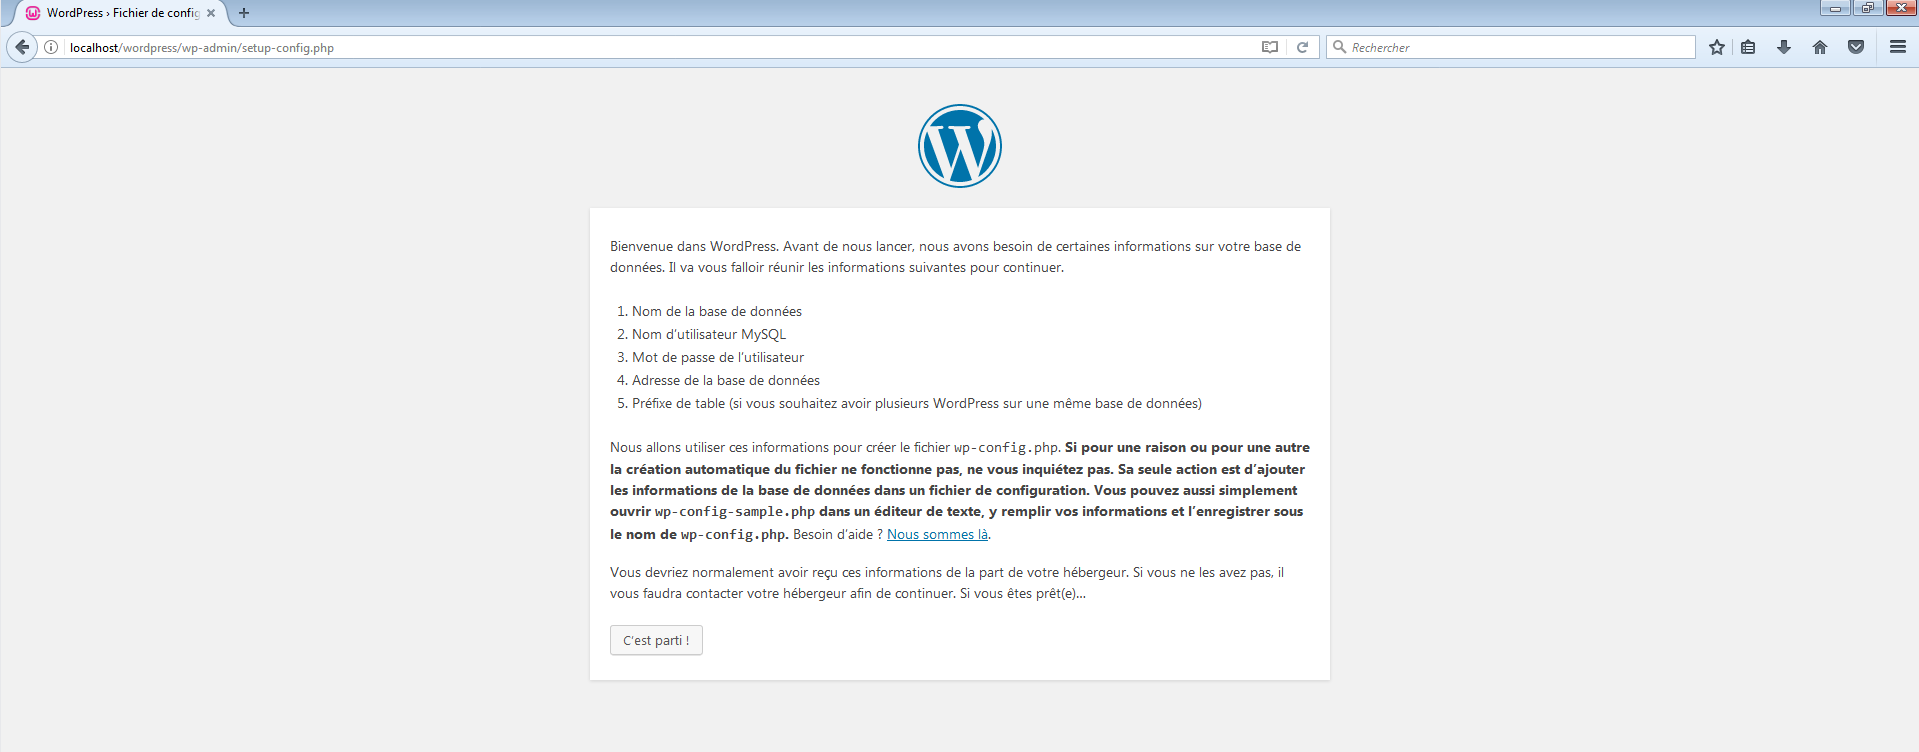 Guide Complet Wamp Creer Importer Son Site Internet Wordpress